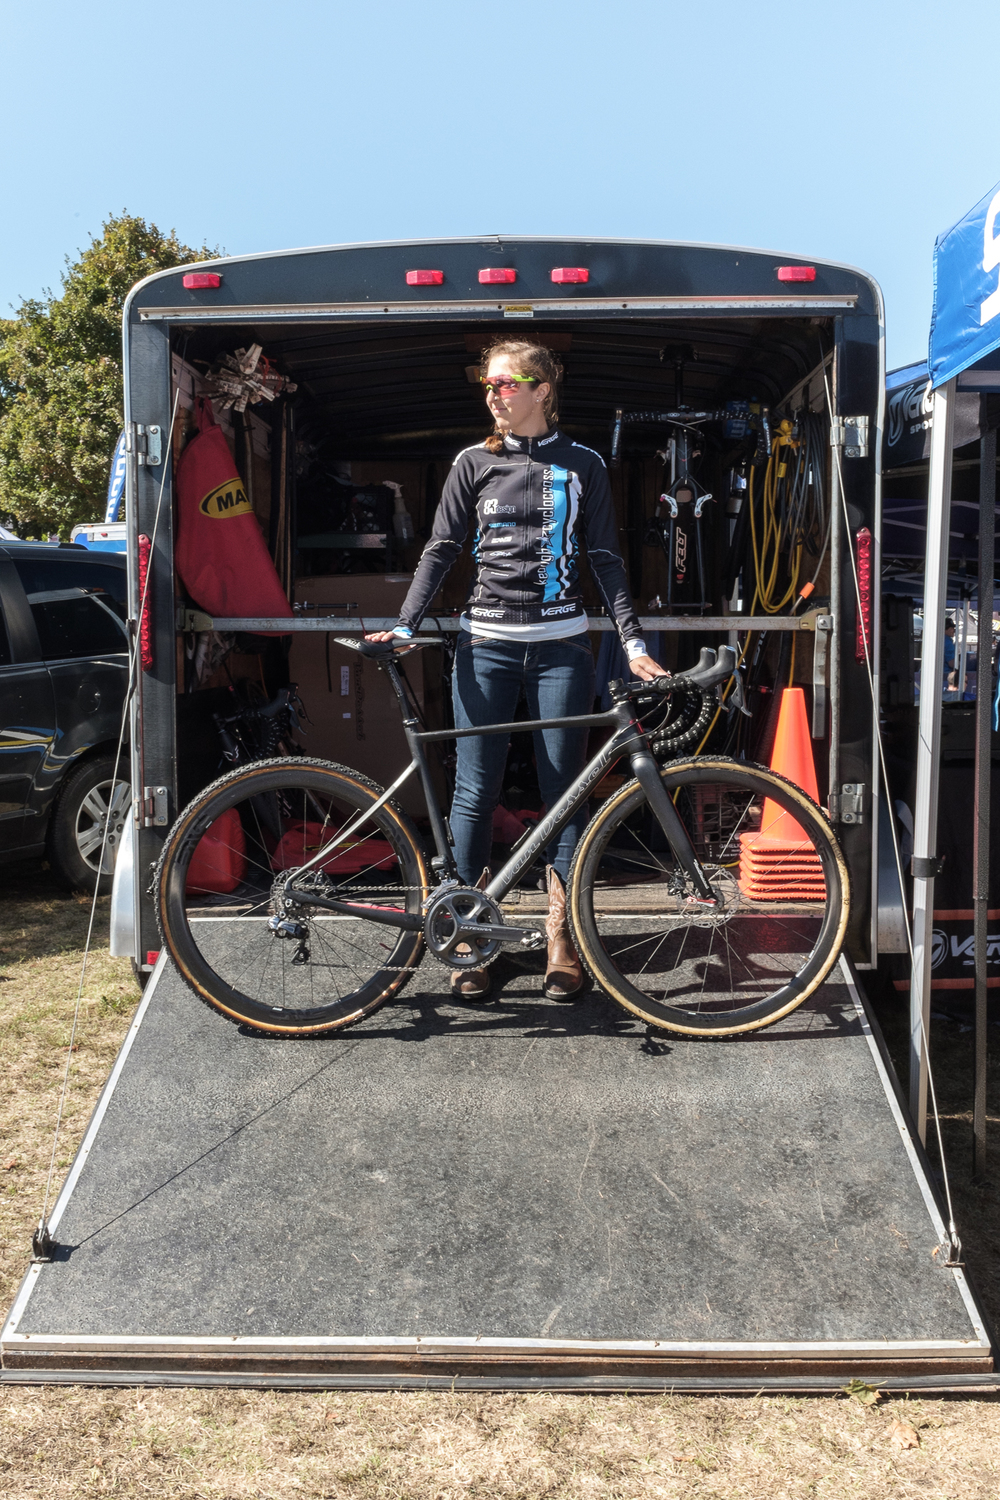 141009_Cyclocross_Pretty_Damned_Fast_Heather_Jen_Jordan_Rough_edits-34.jpg